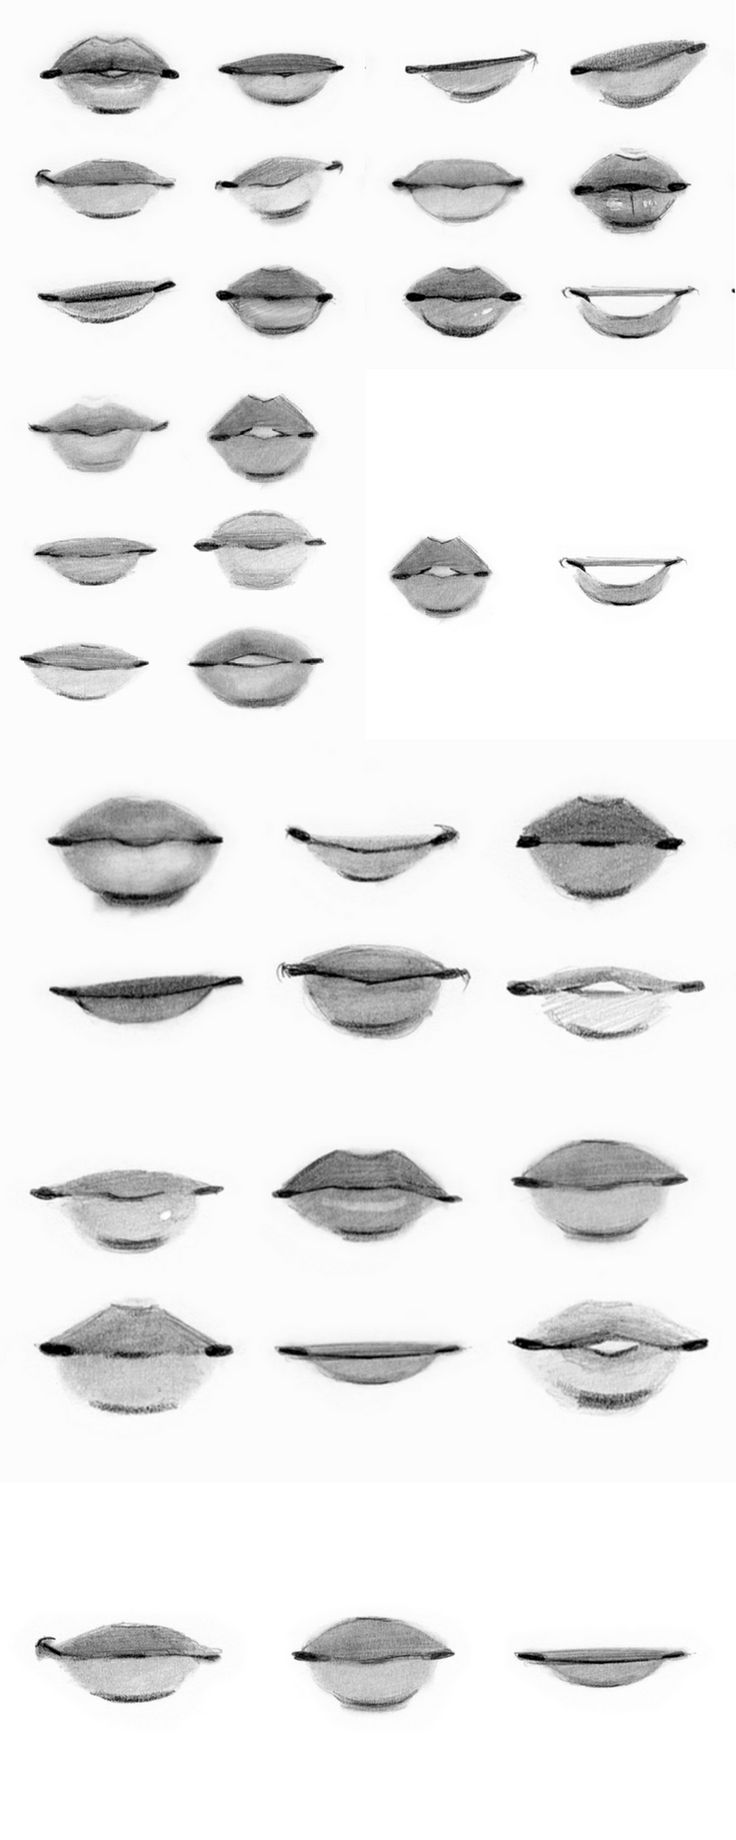 these are some mouth references from a class by Gabrielle DeCesaris. (Portrait Artist)